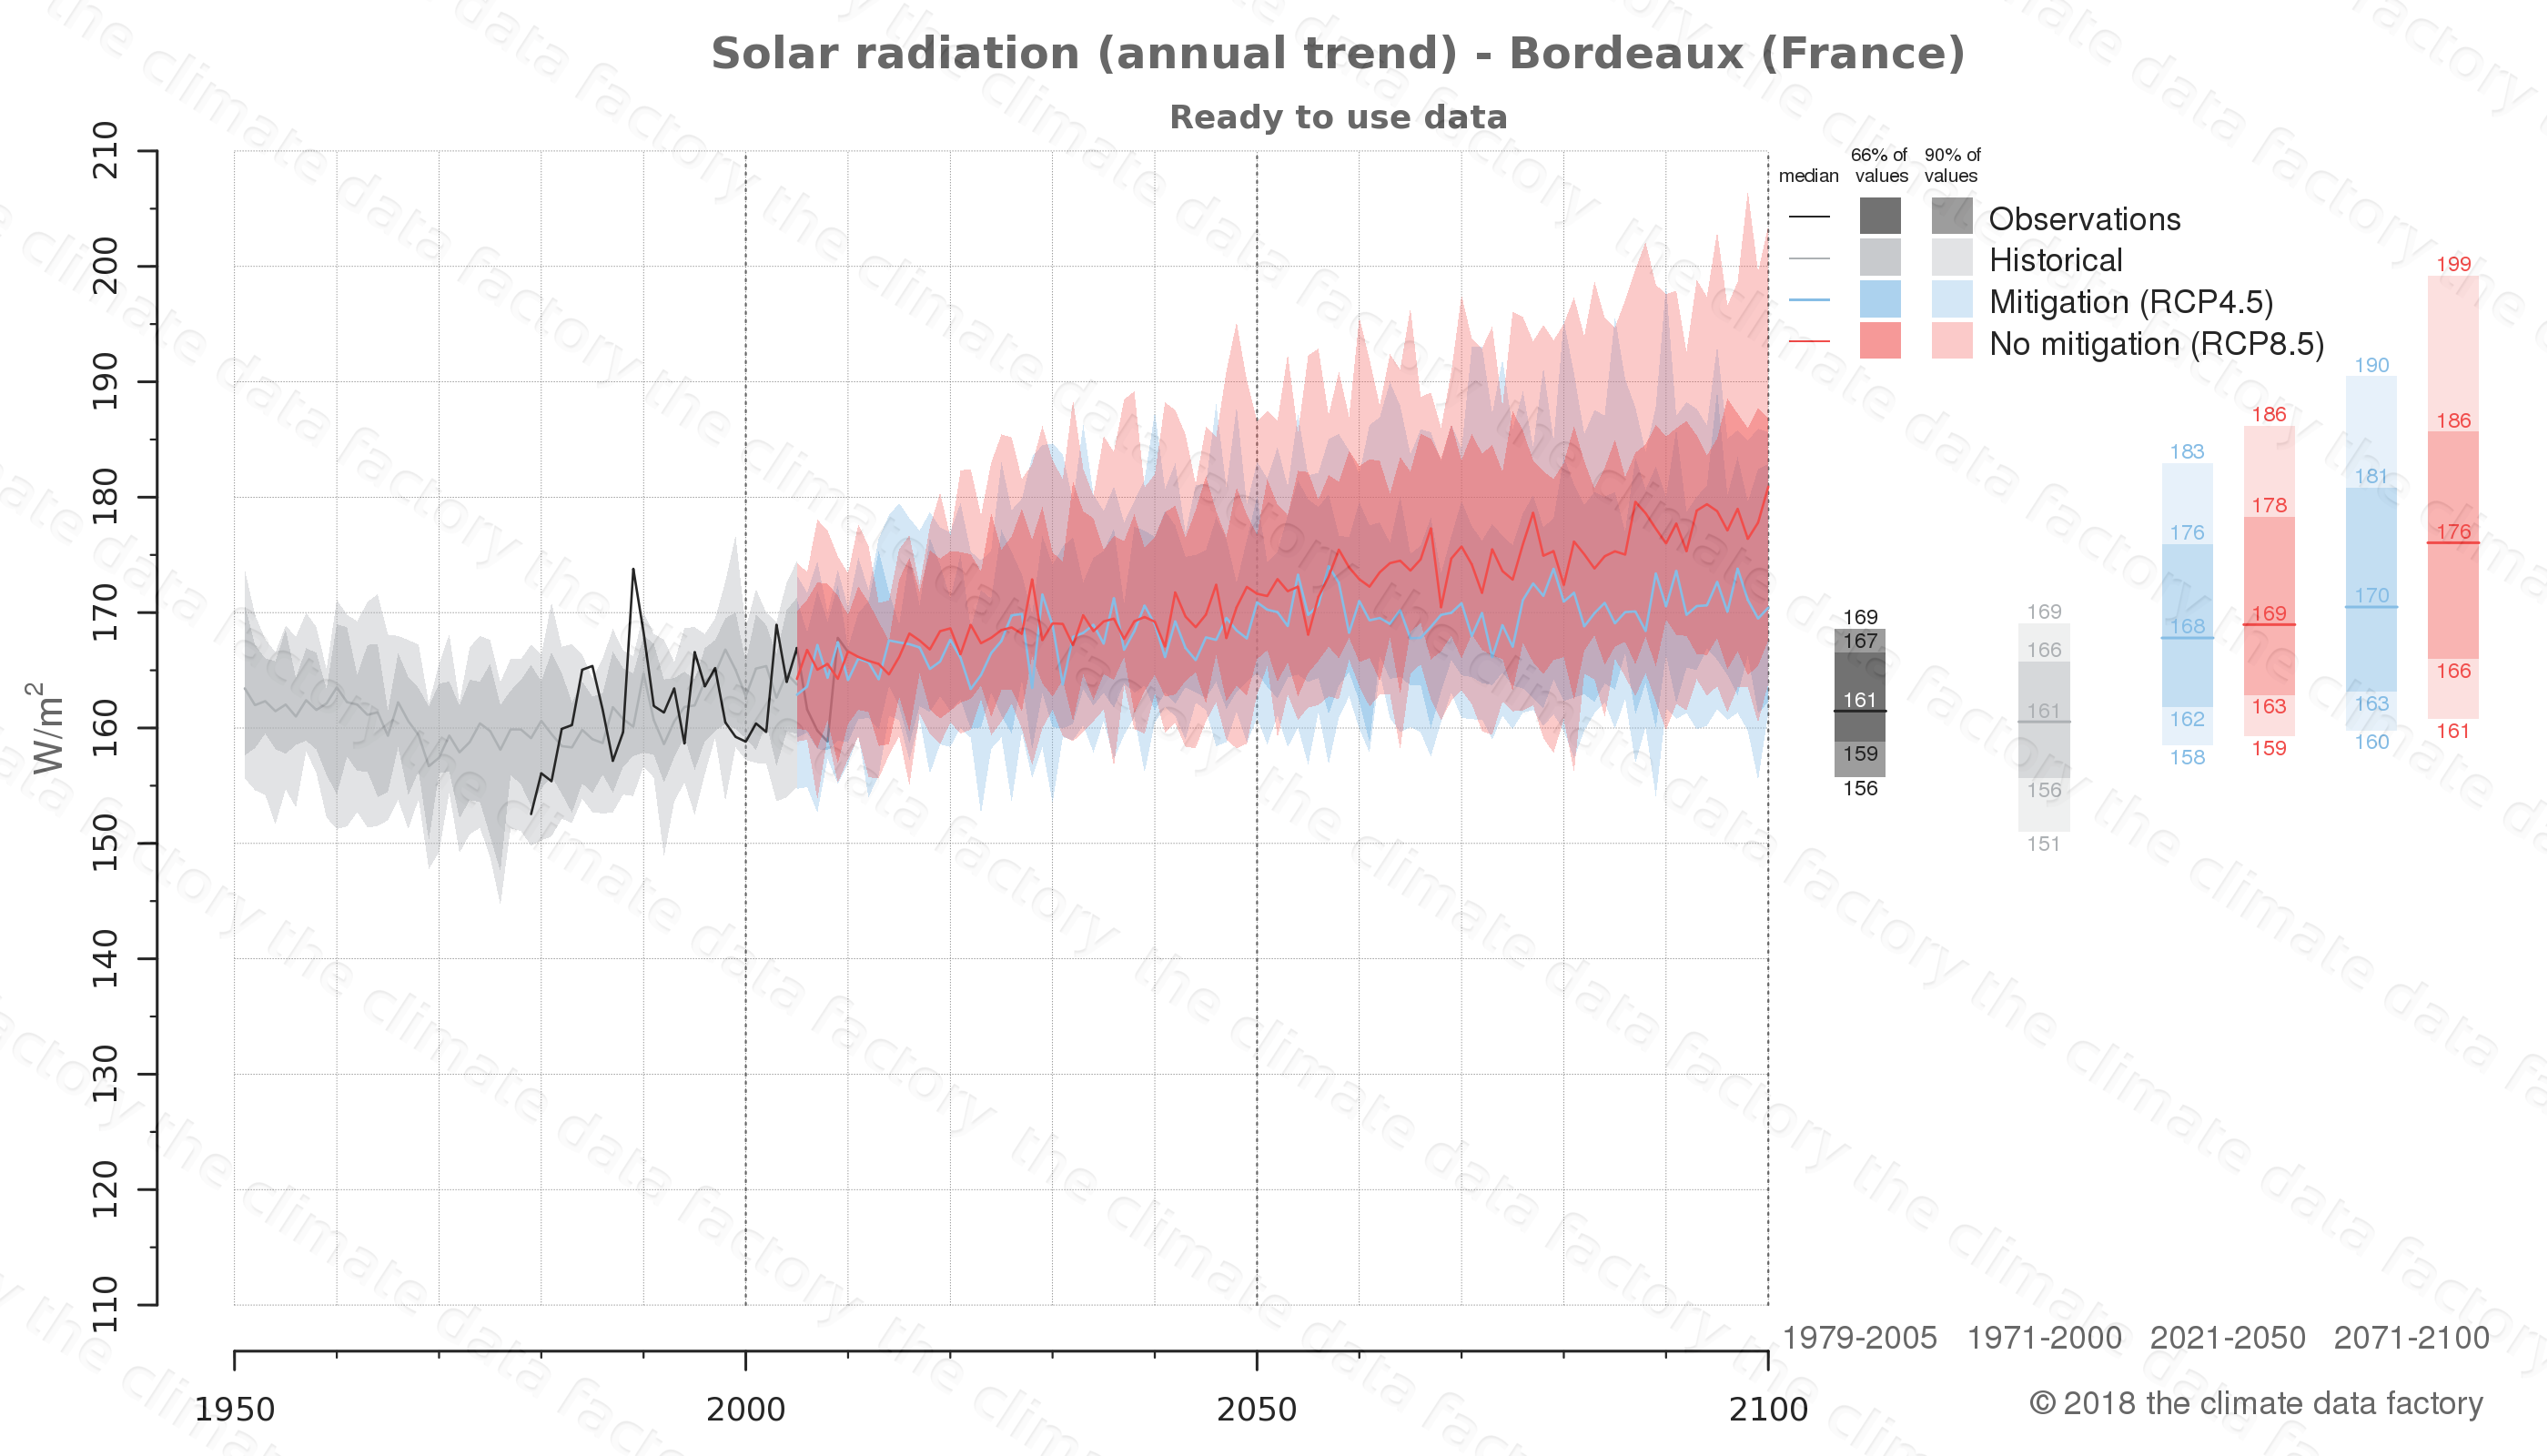 climate change data policy adaptation climate graph city data solar-radiation bordeaux france